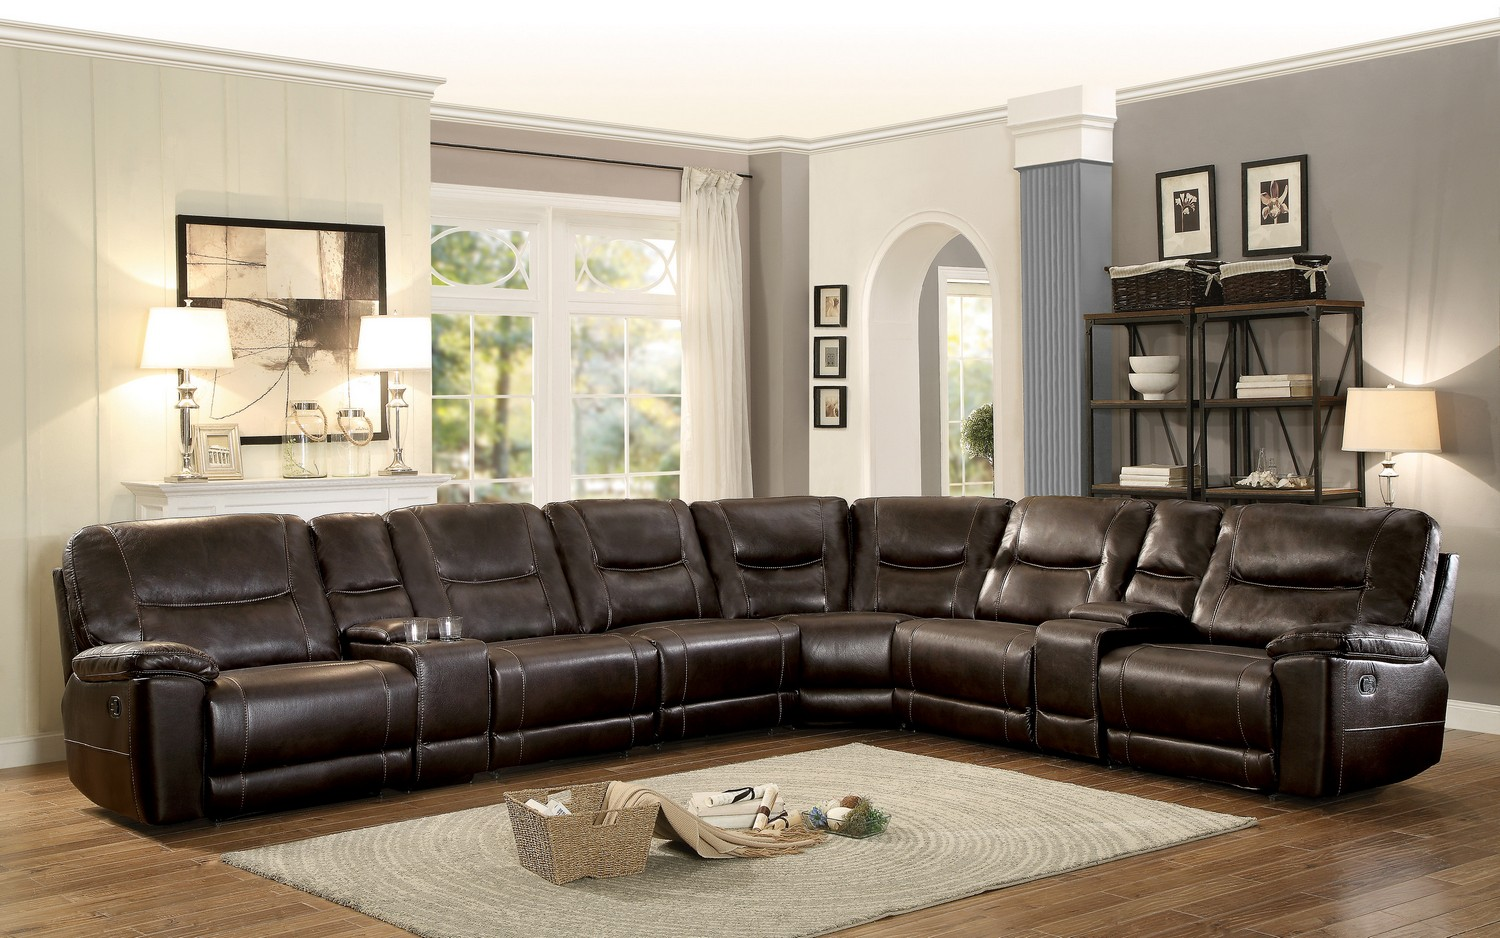 Homelegance Columbus Reclining Sectional Sofa Set A Breathable Faux Leather Dark Brown